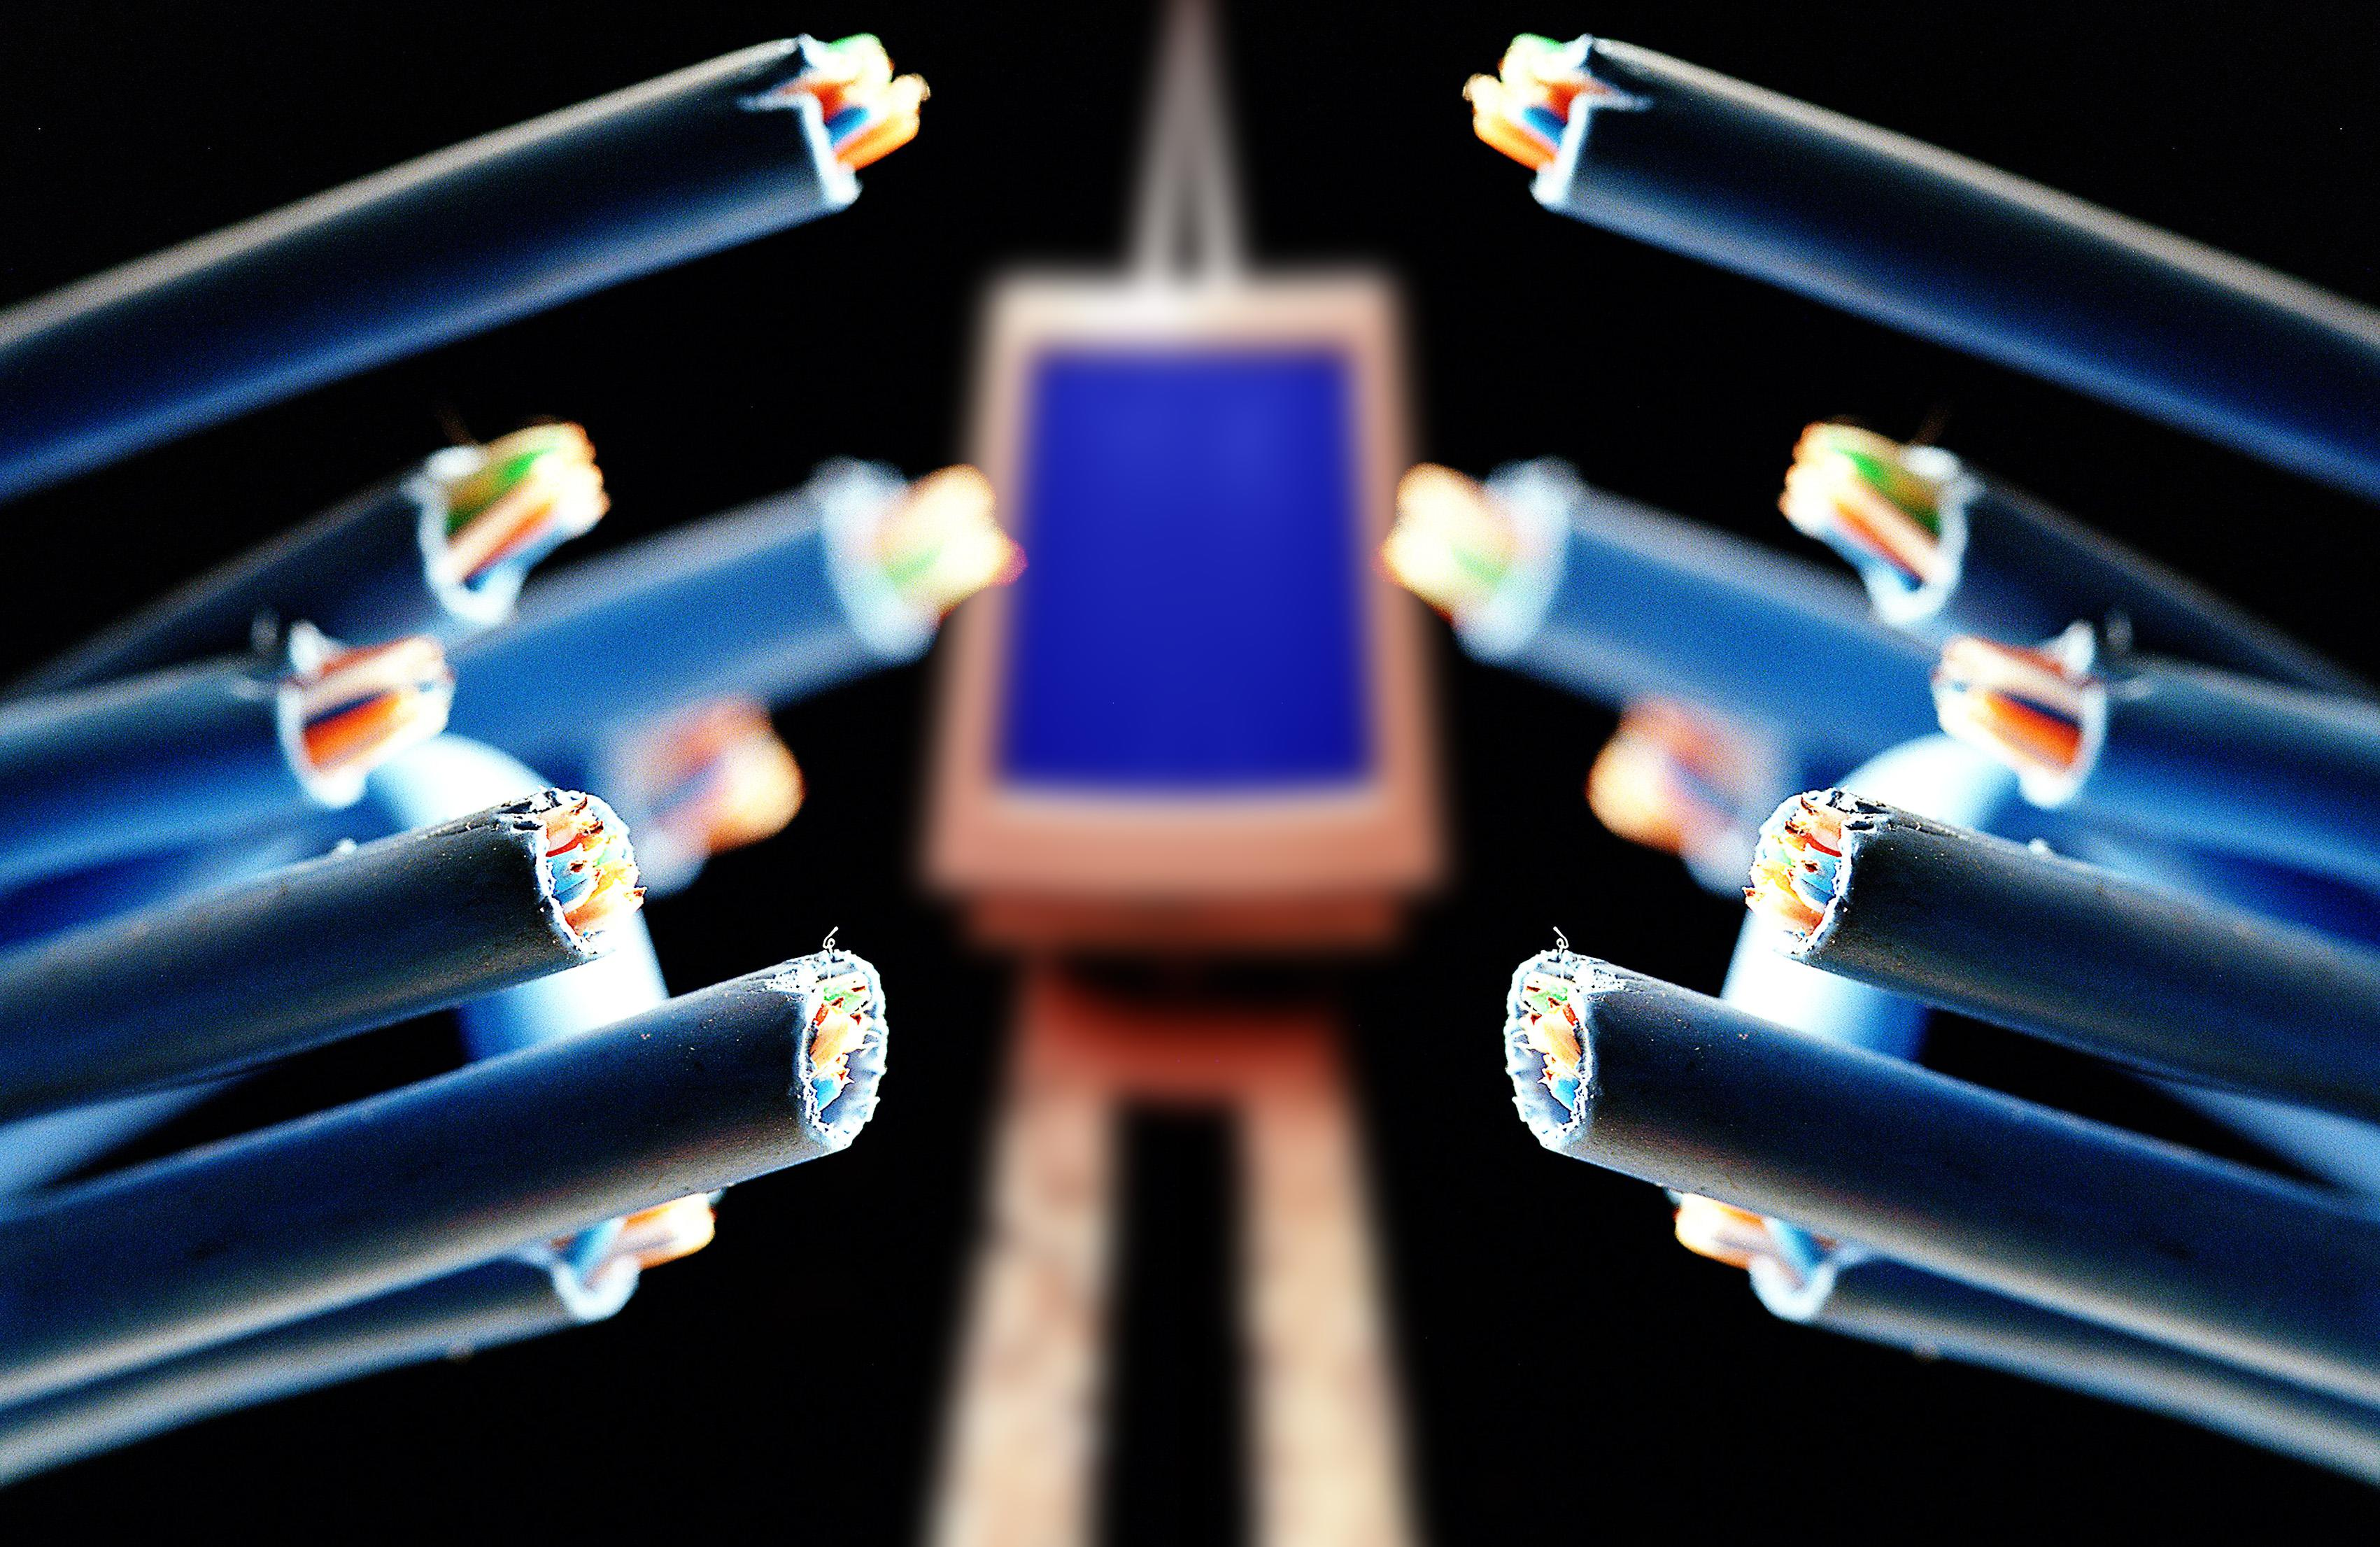 Broadband cables, 14 November 2004. AFR Photo-illustration by LOUIE DOUVIS